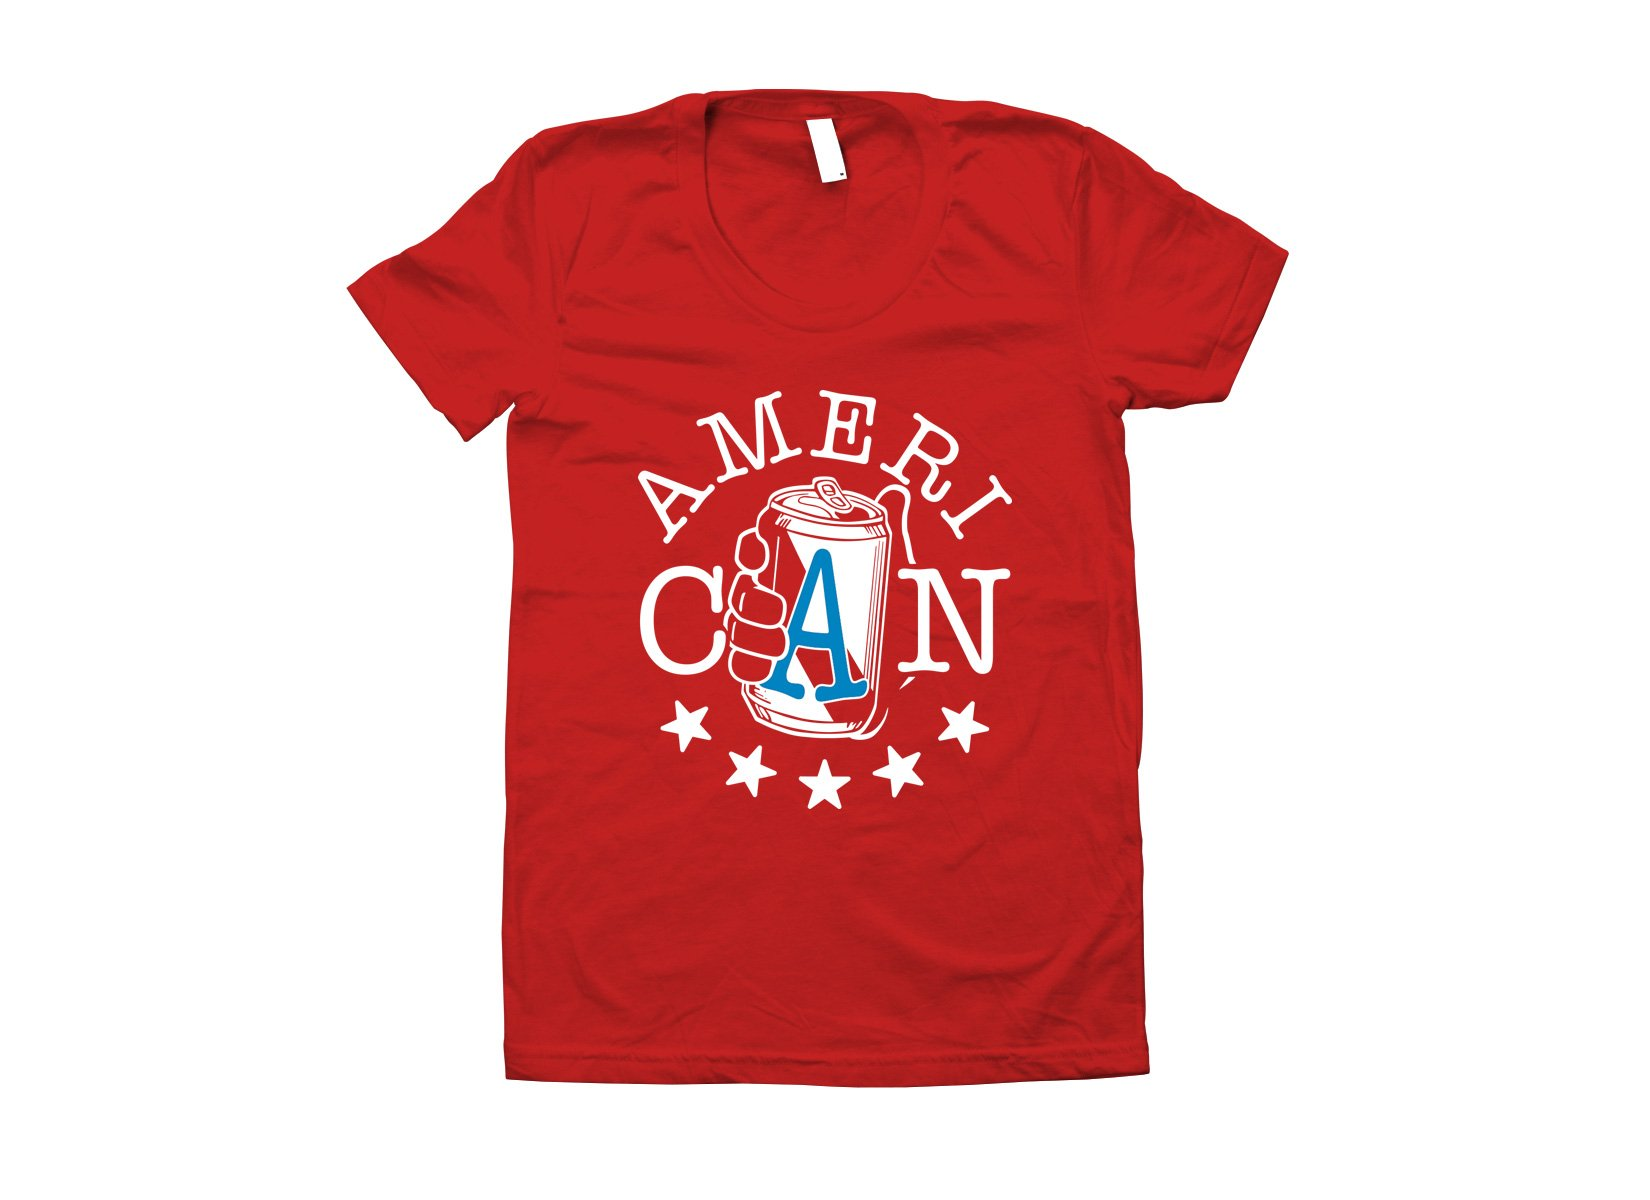 AmeriCAN on Juniors T-Shirt